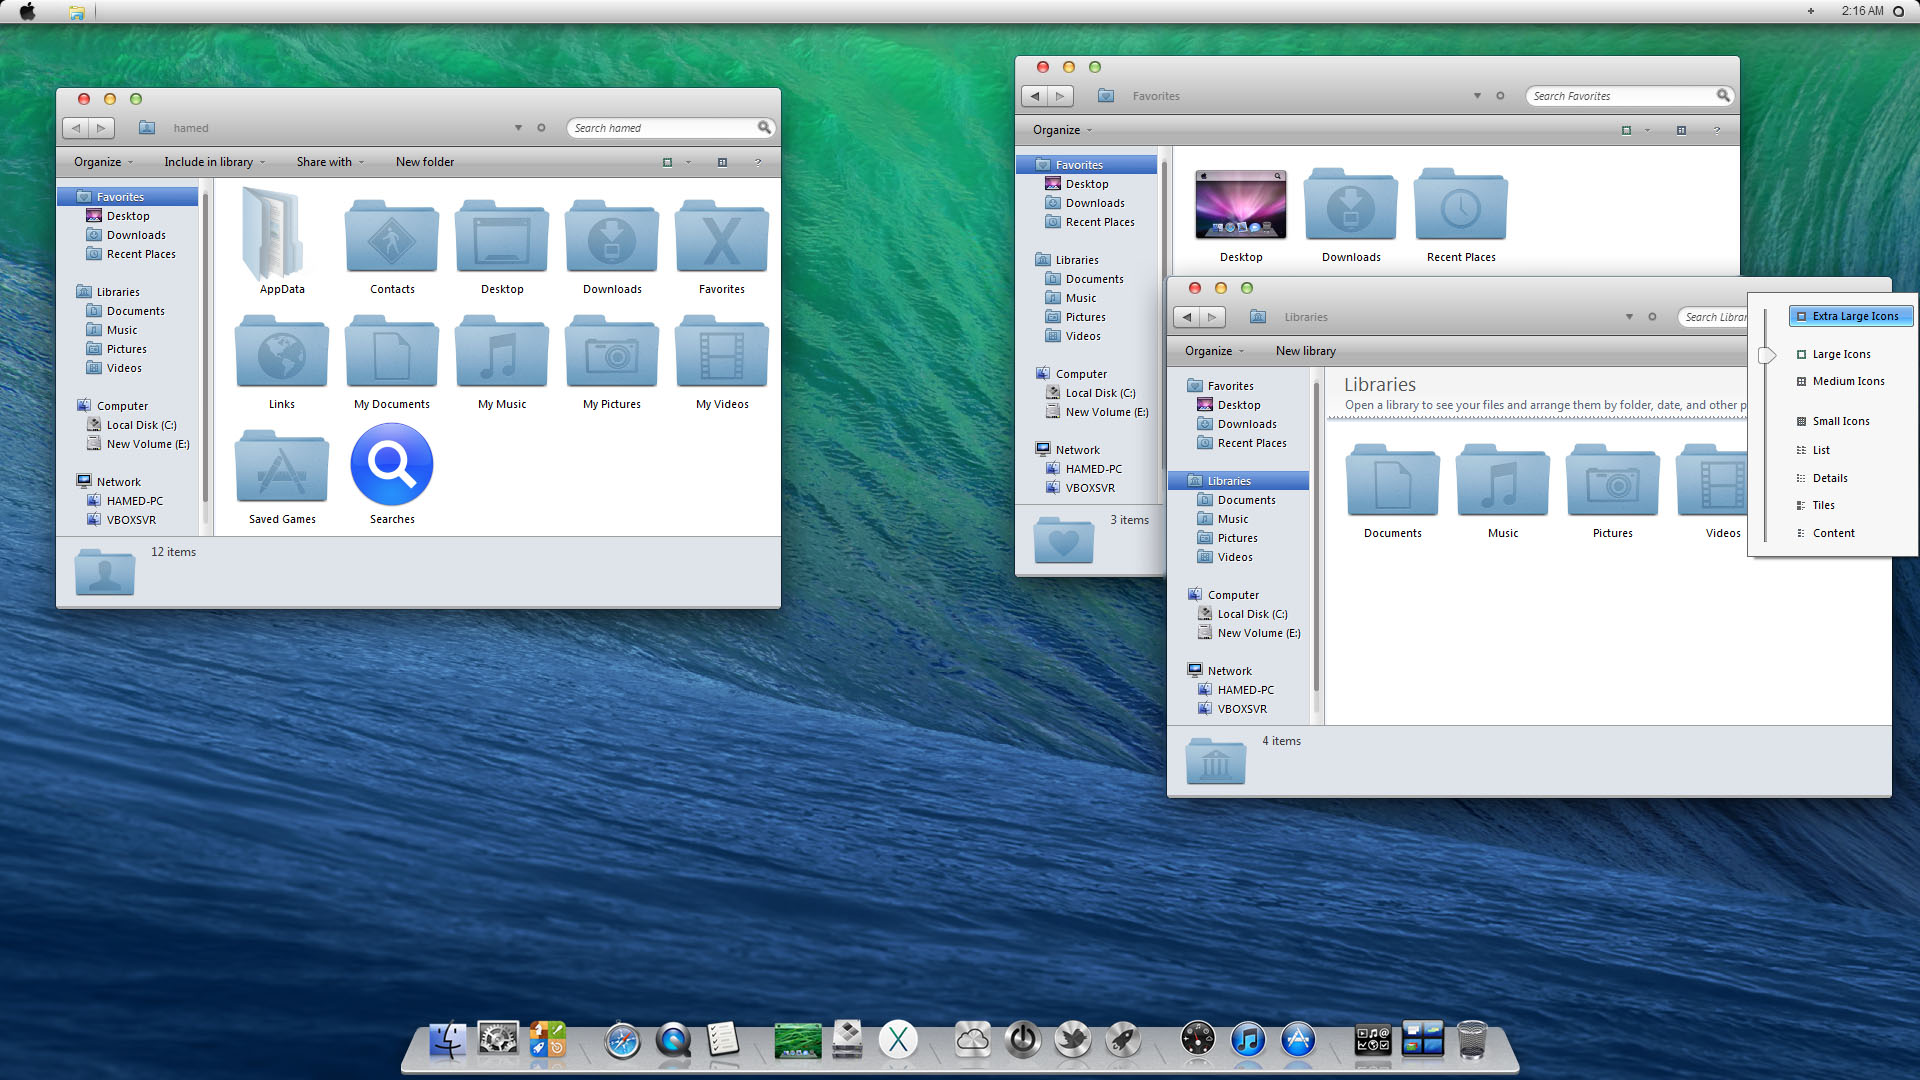 Mavericks skin pack 3. 0 for windows 8. 1.